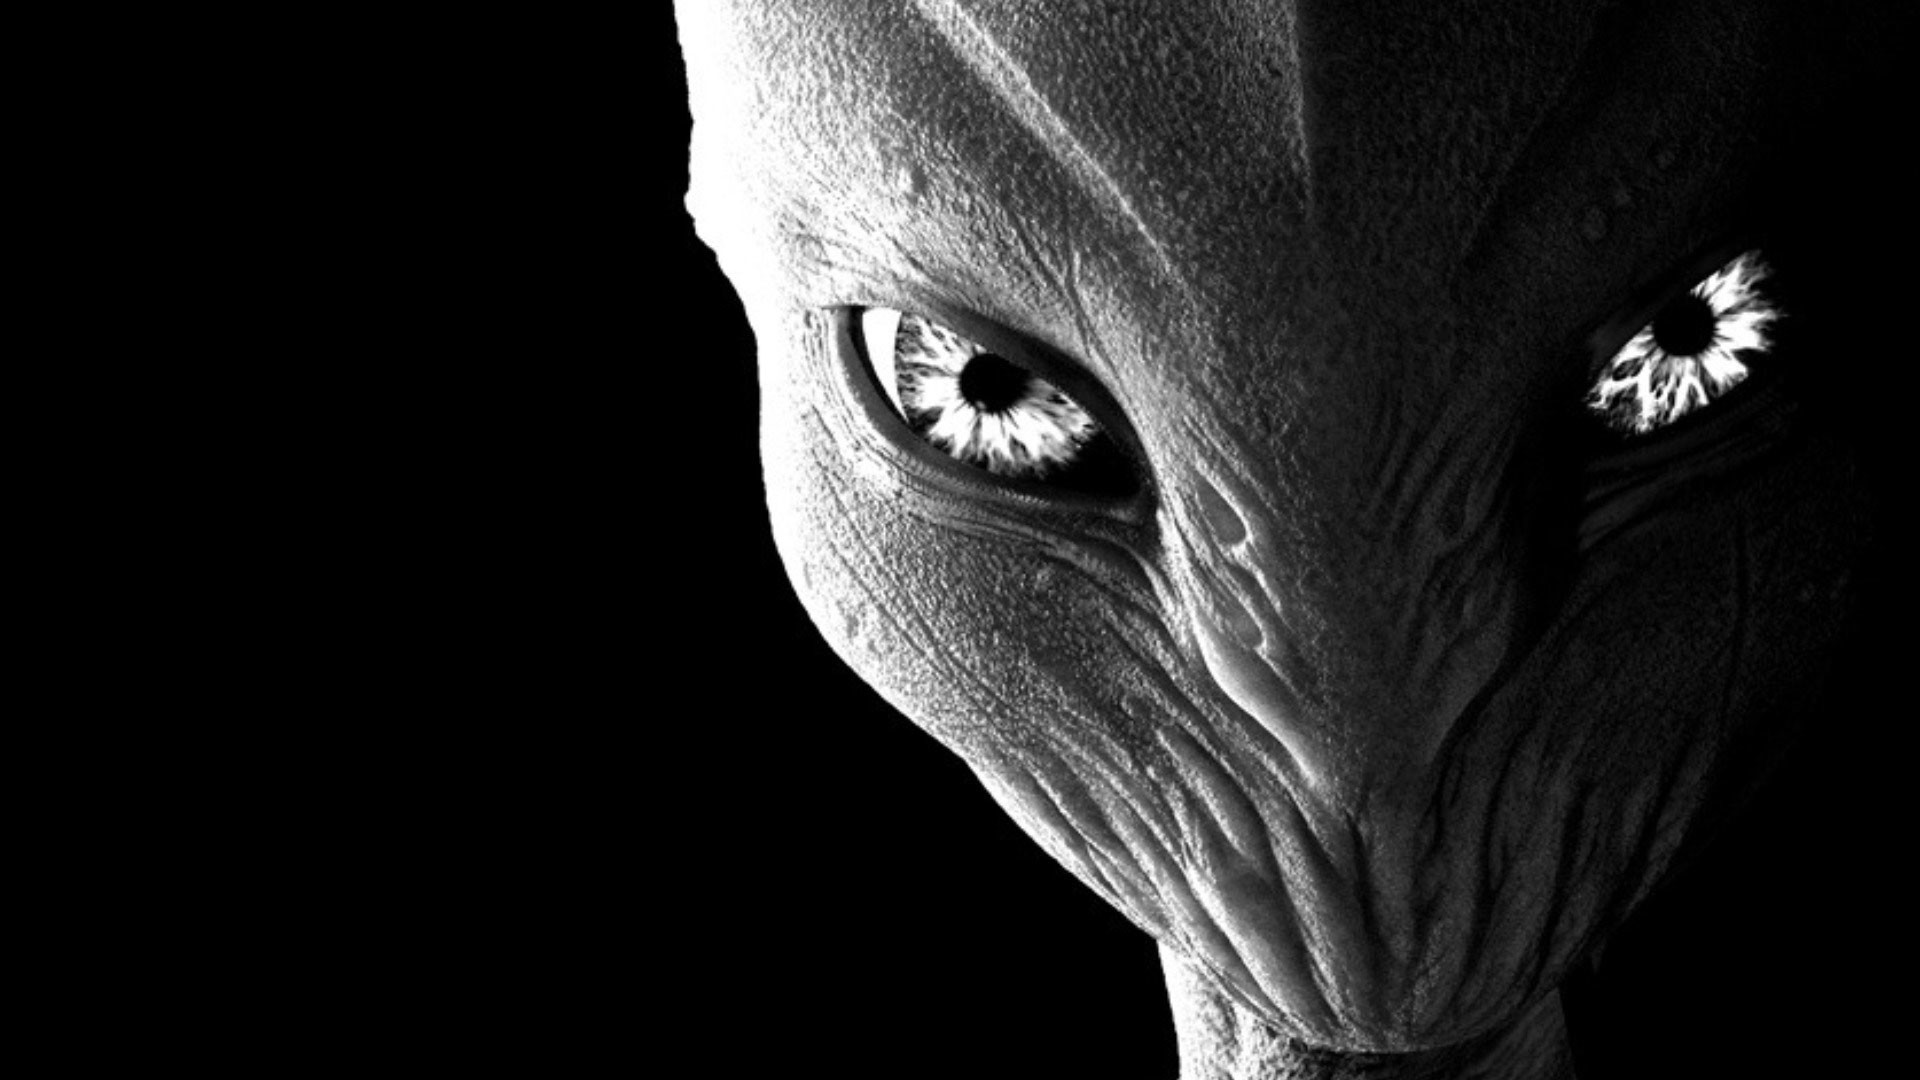 Alien Wallpaper Hd Desktop 71 Images